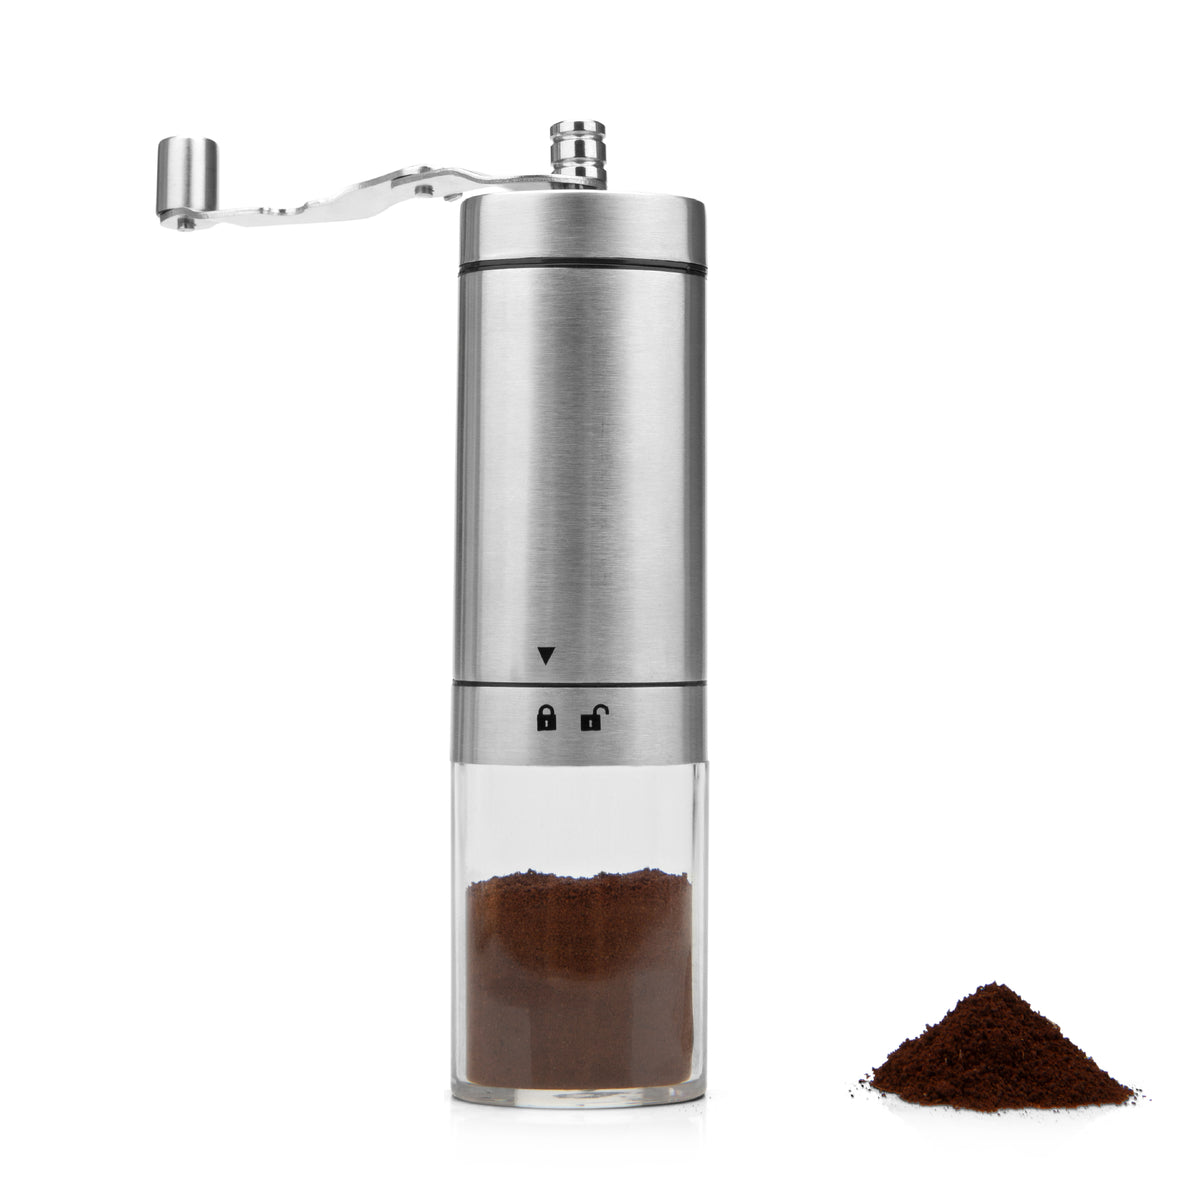 EspressoWorks Manual Coffee Burr Grinder